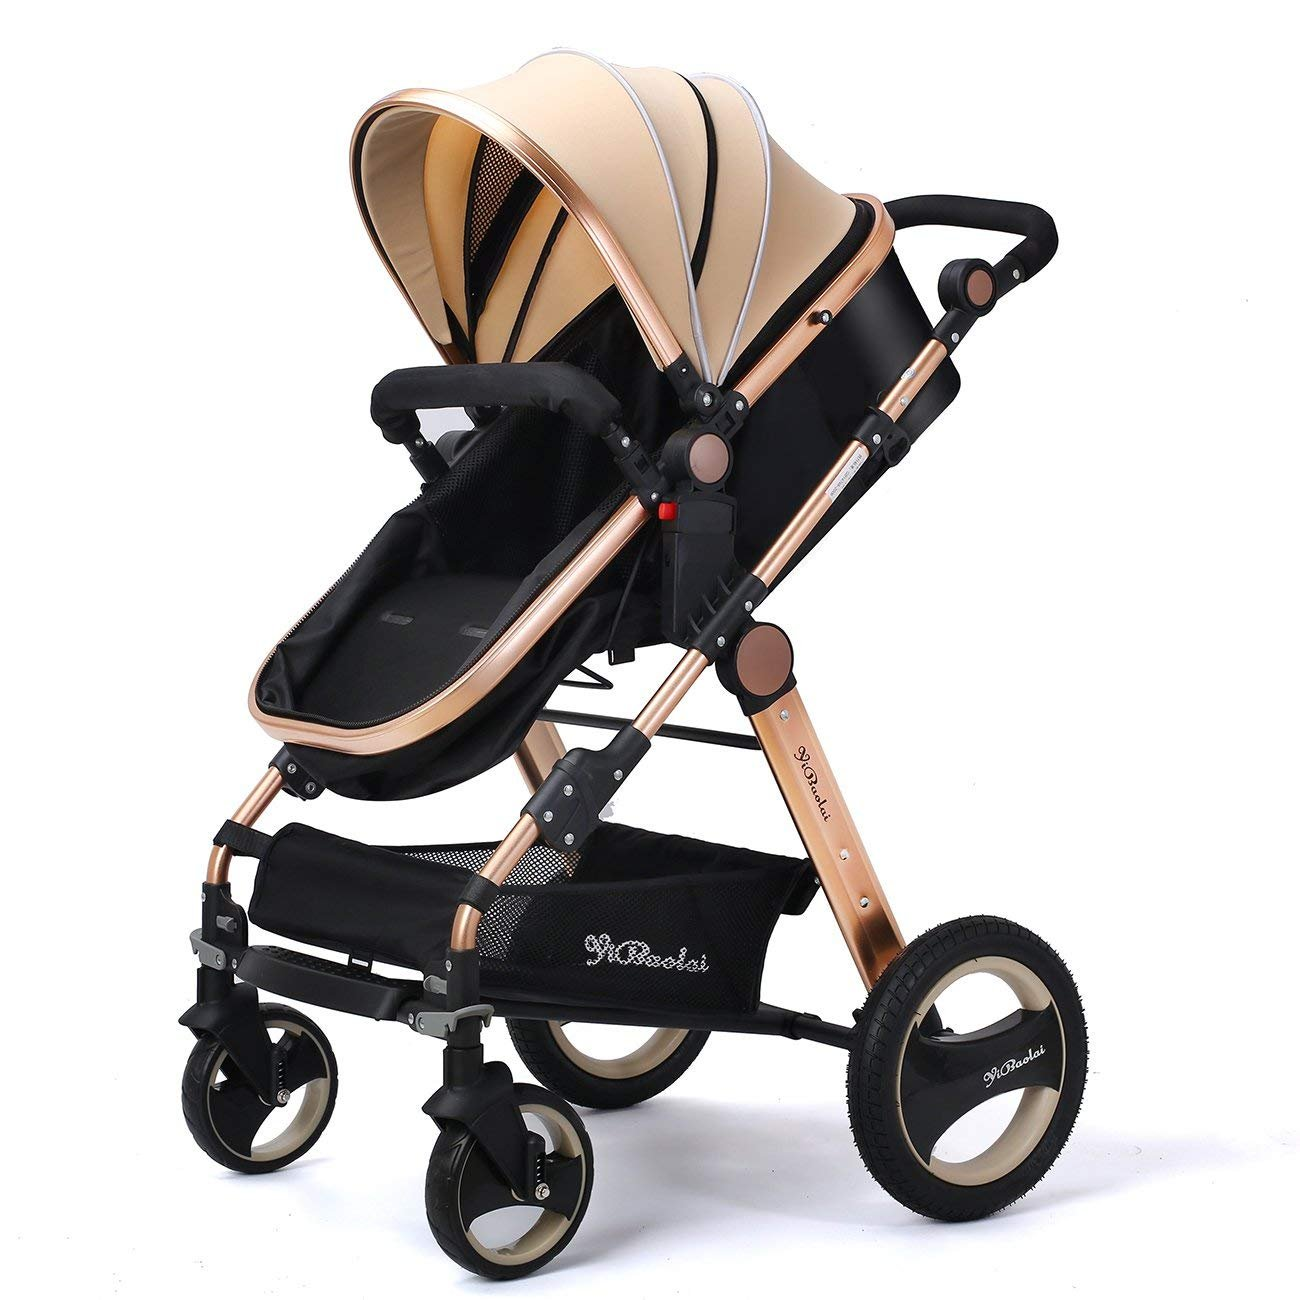 1f07c49747da YBL High Landscape Toddlers Prams 2 In 1 Cheap From Birth Newborn  Pushchairs Baby Strollers Fold Two Way With Cup Holder And Meal Plate |  Prams, ...